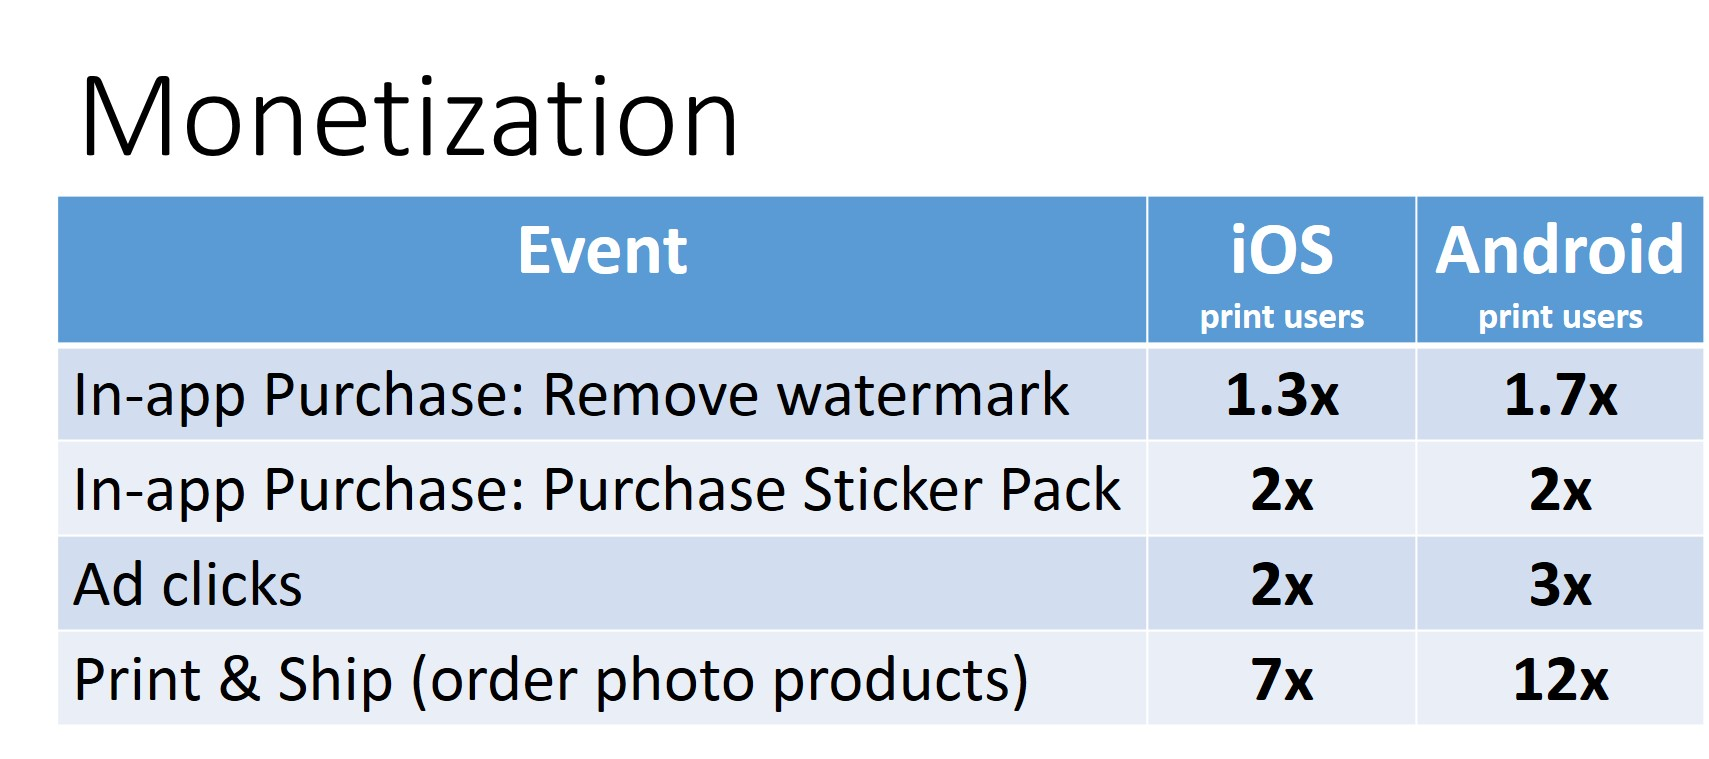 A Print-at-Home button increased photo product orders dramatically.